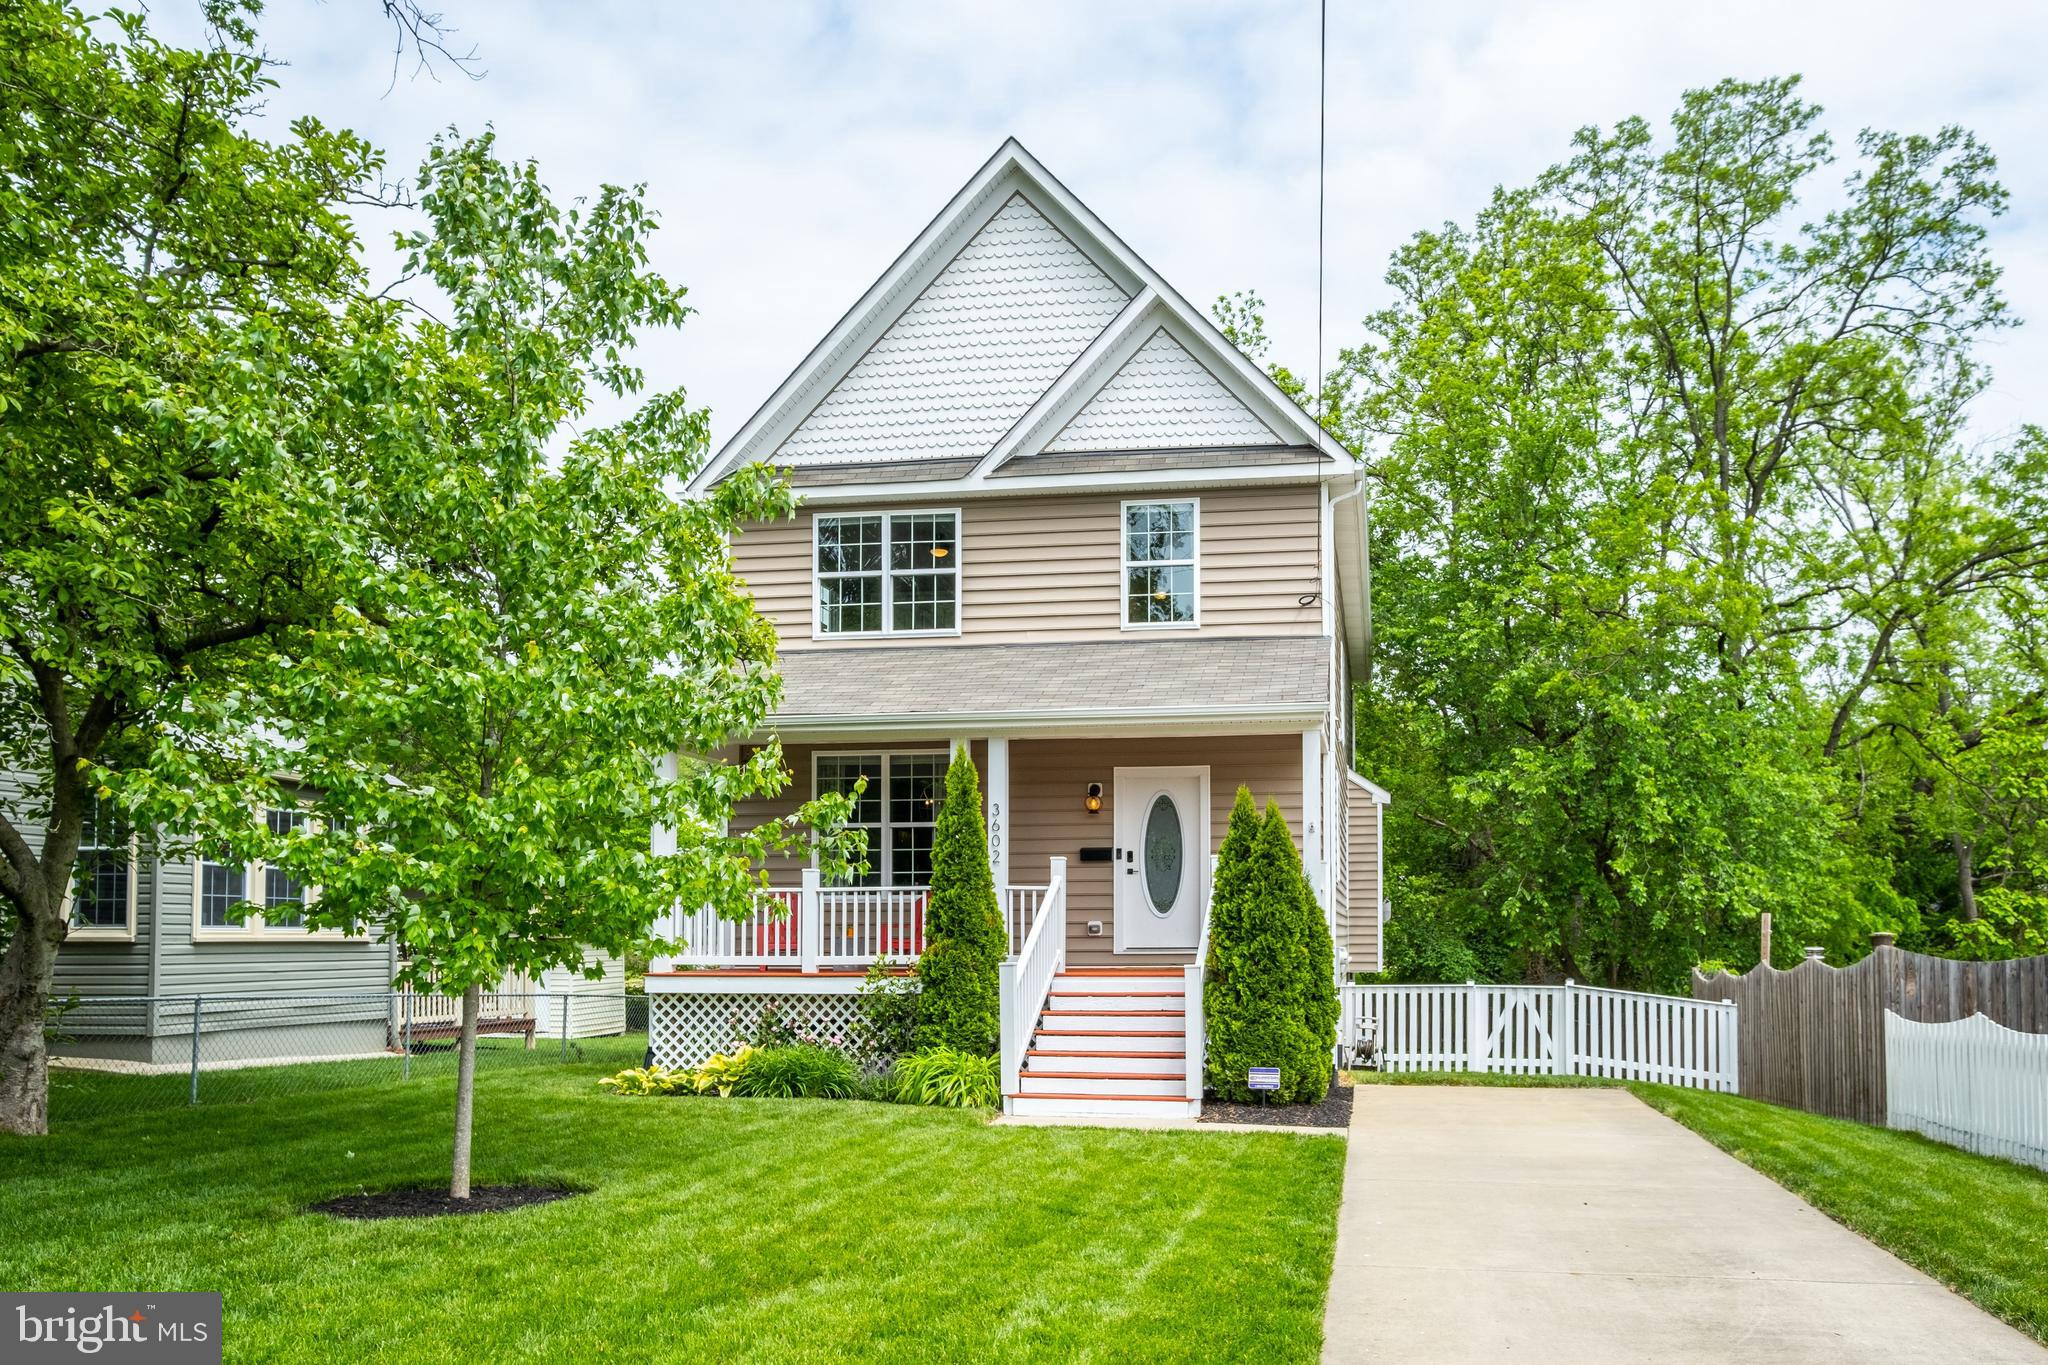 Beautiful 4BR/3.5BA three-level craftsman style home situated on a meticulously landscaped lot in so